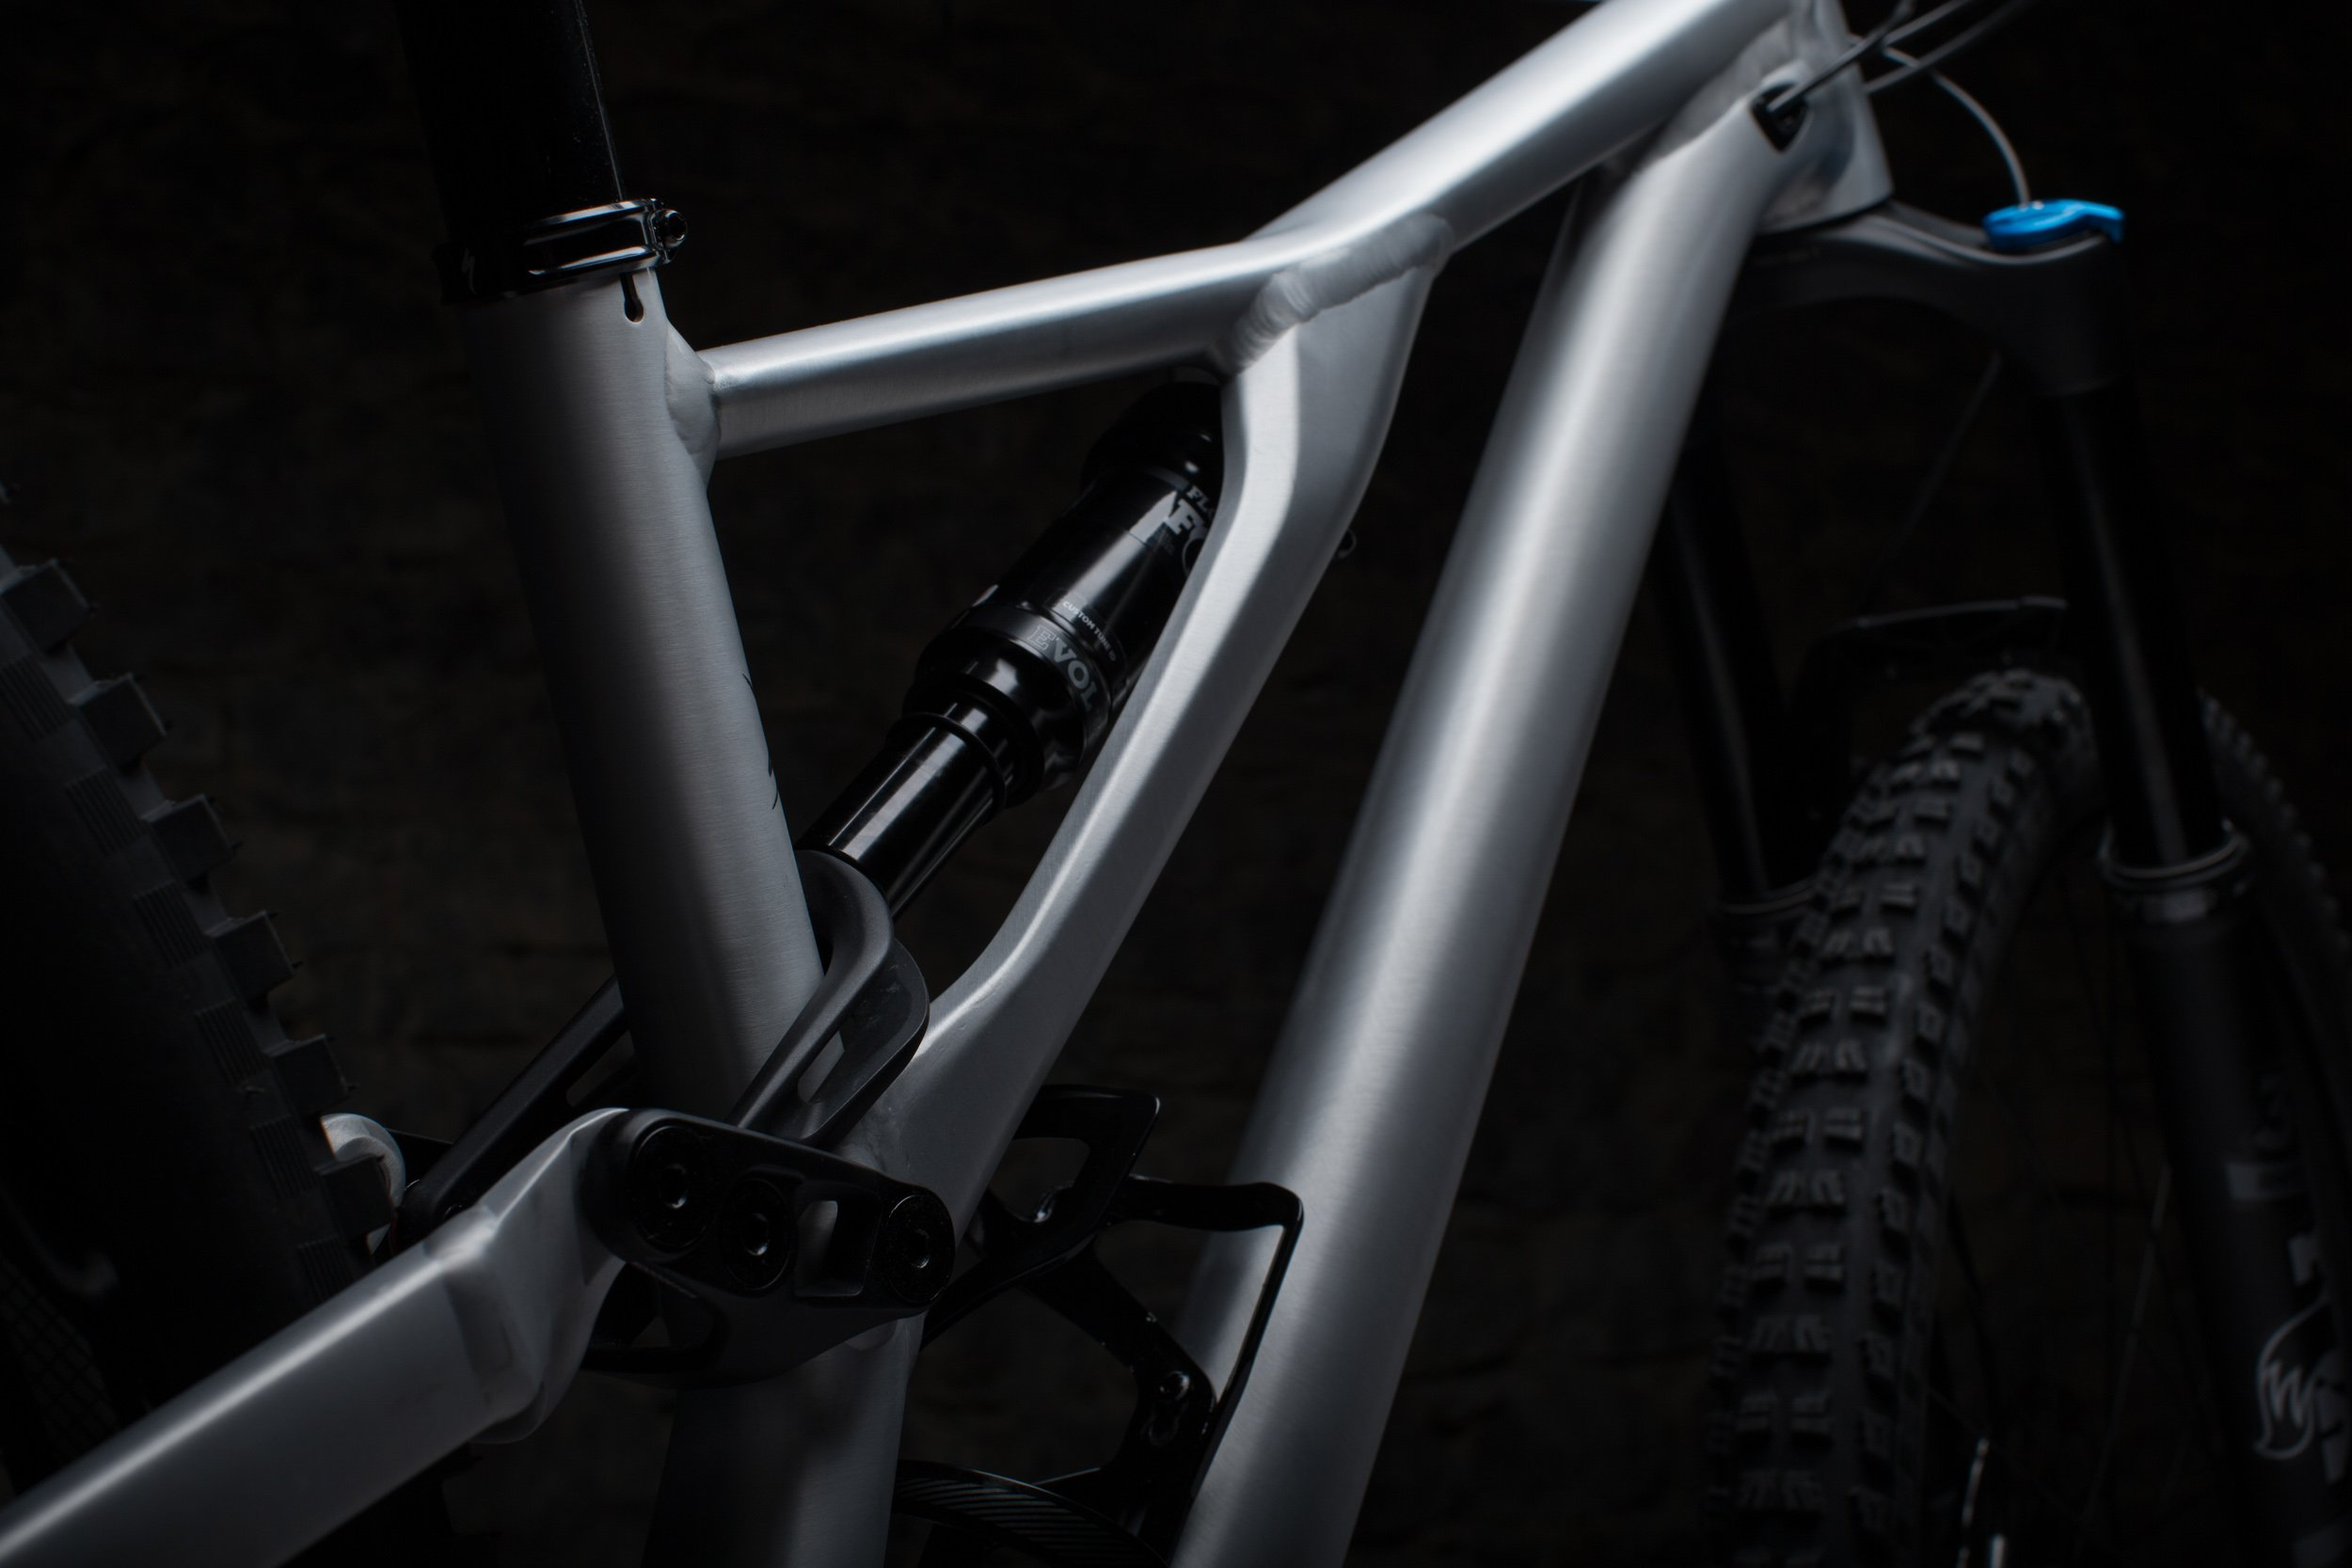 Specialized Stumpjumper sidearm detail, driveside